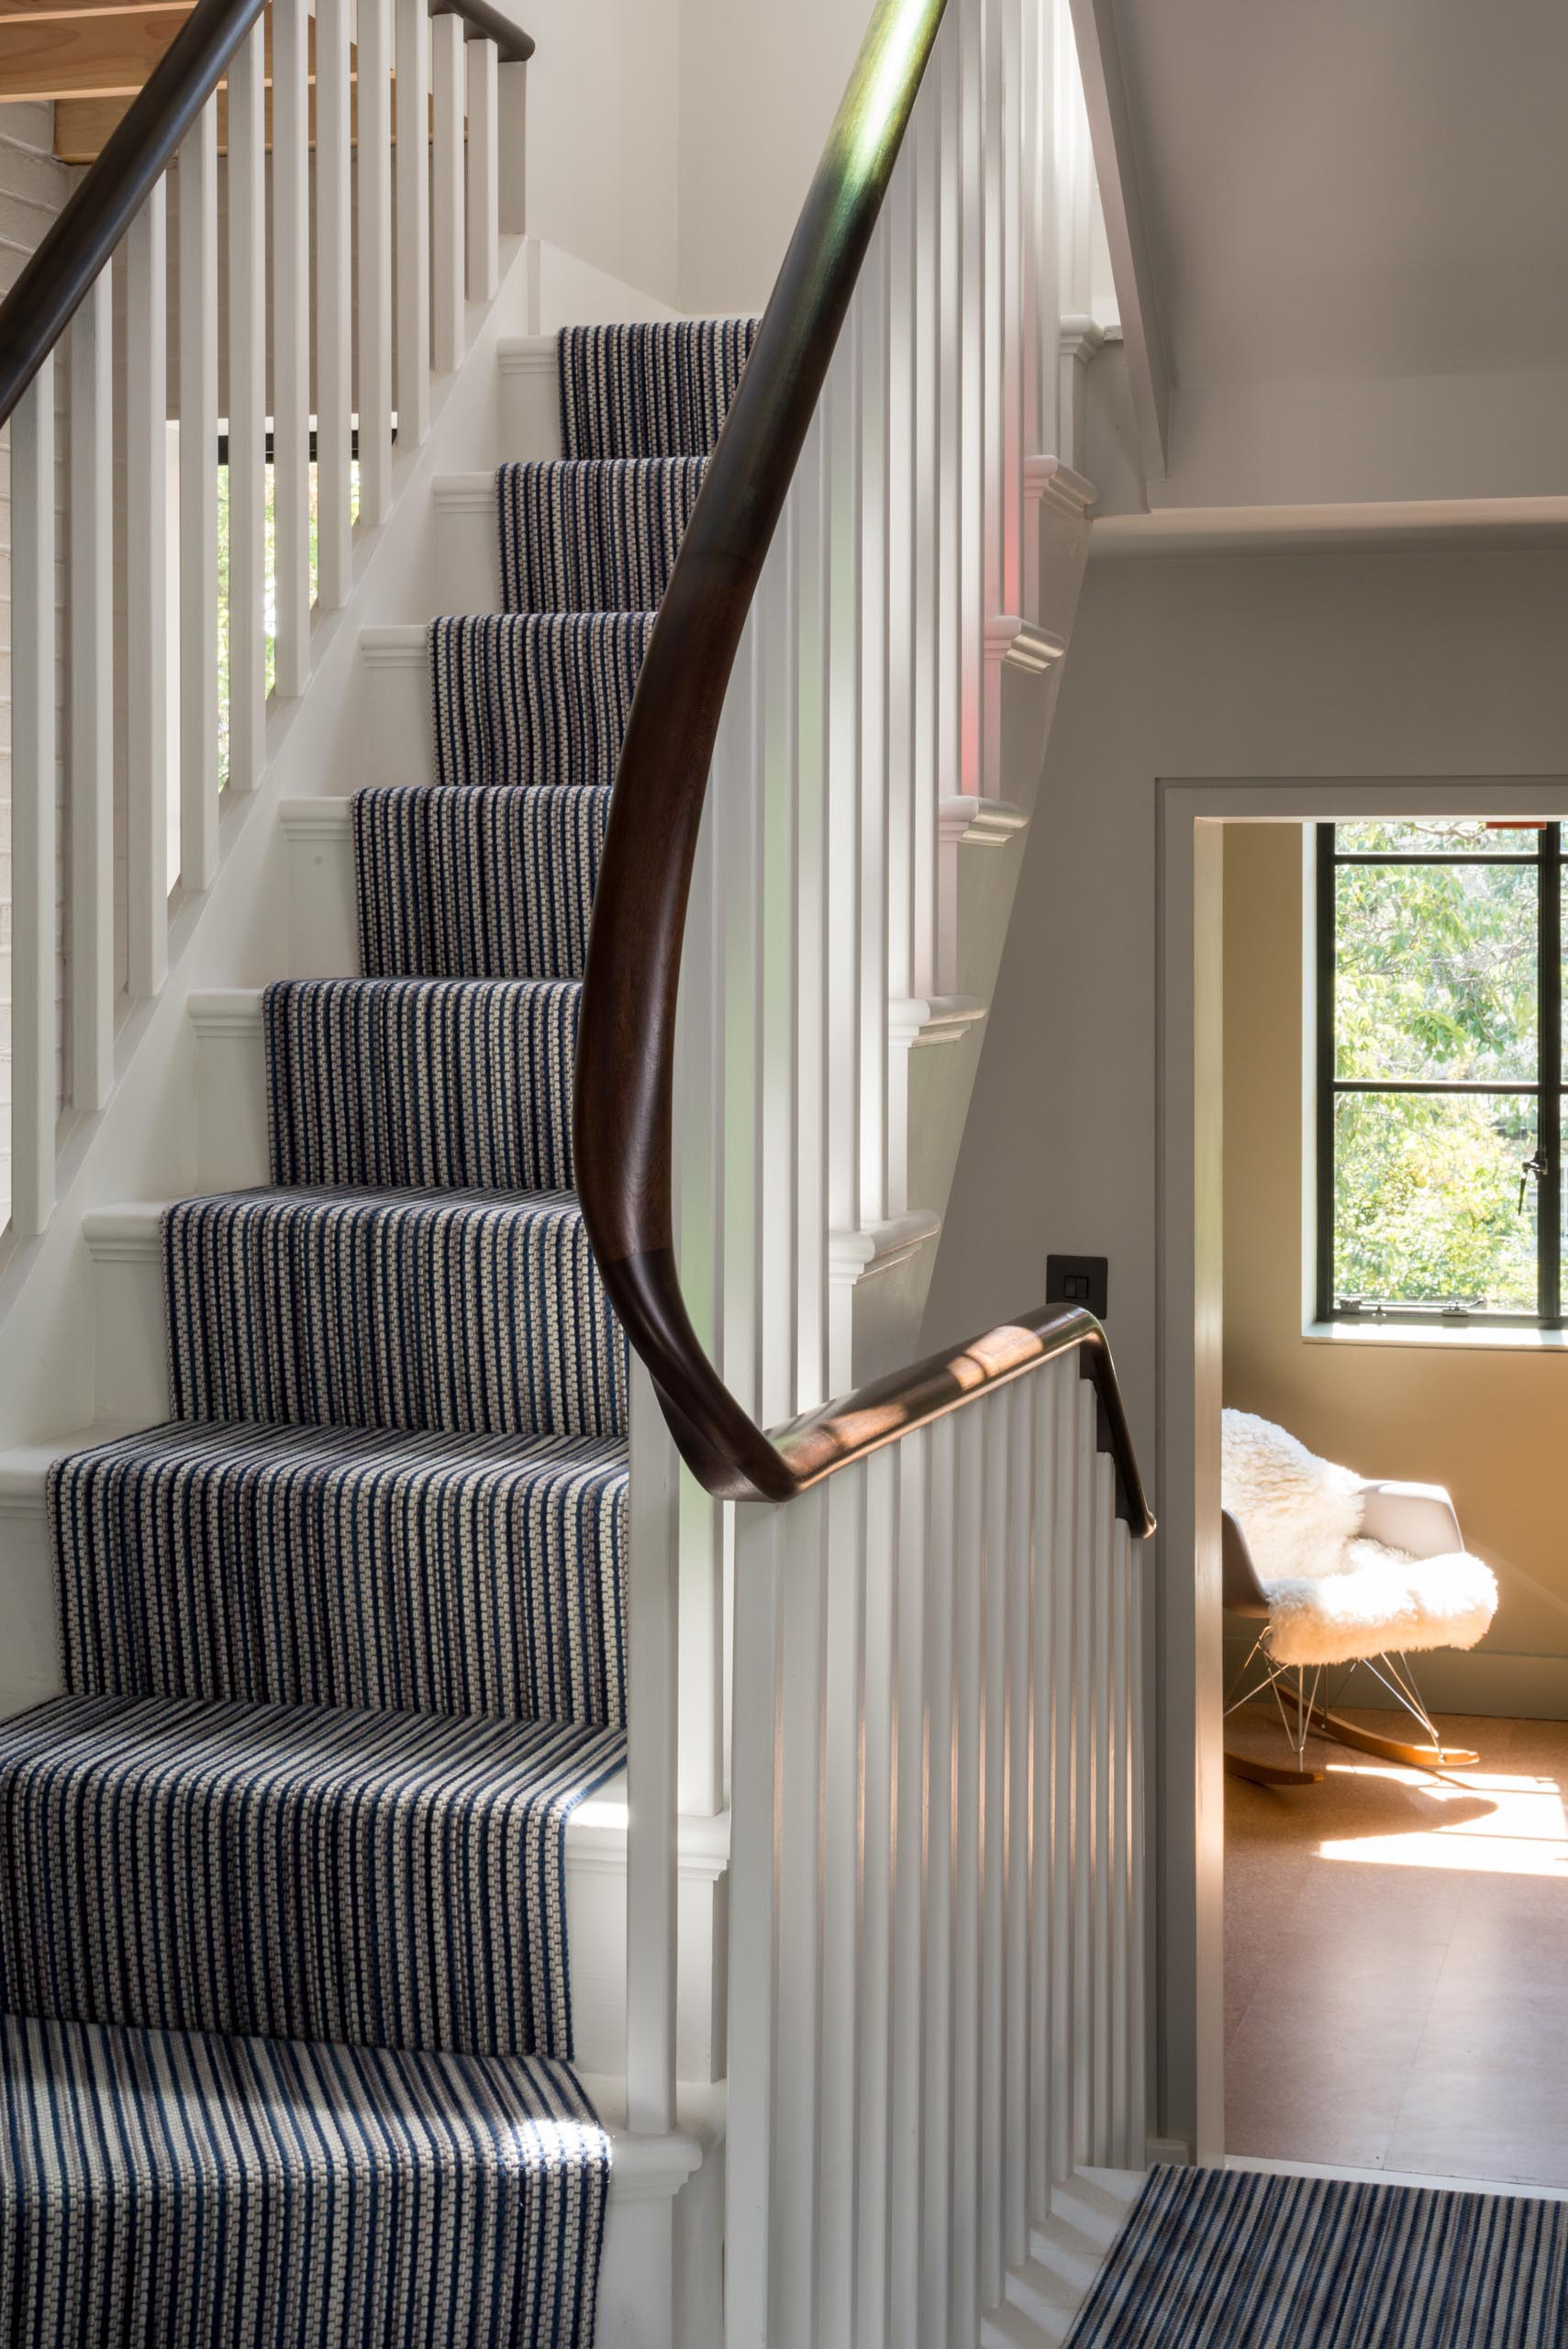 A triple height staircase with white banisters and a curved wood handrail.